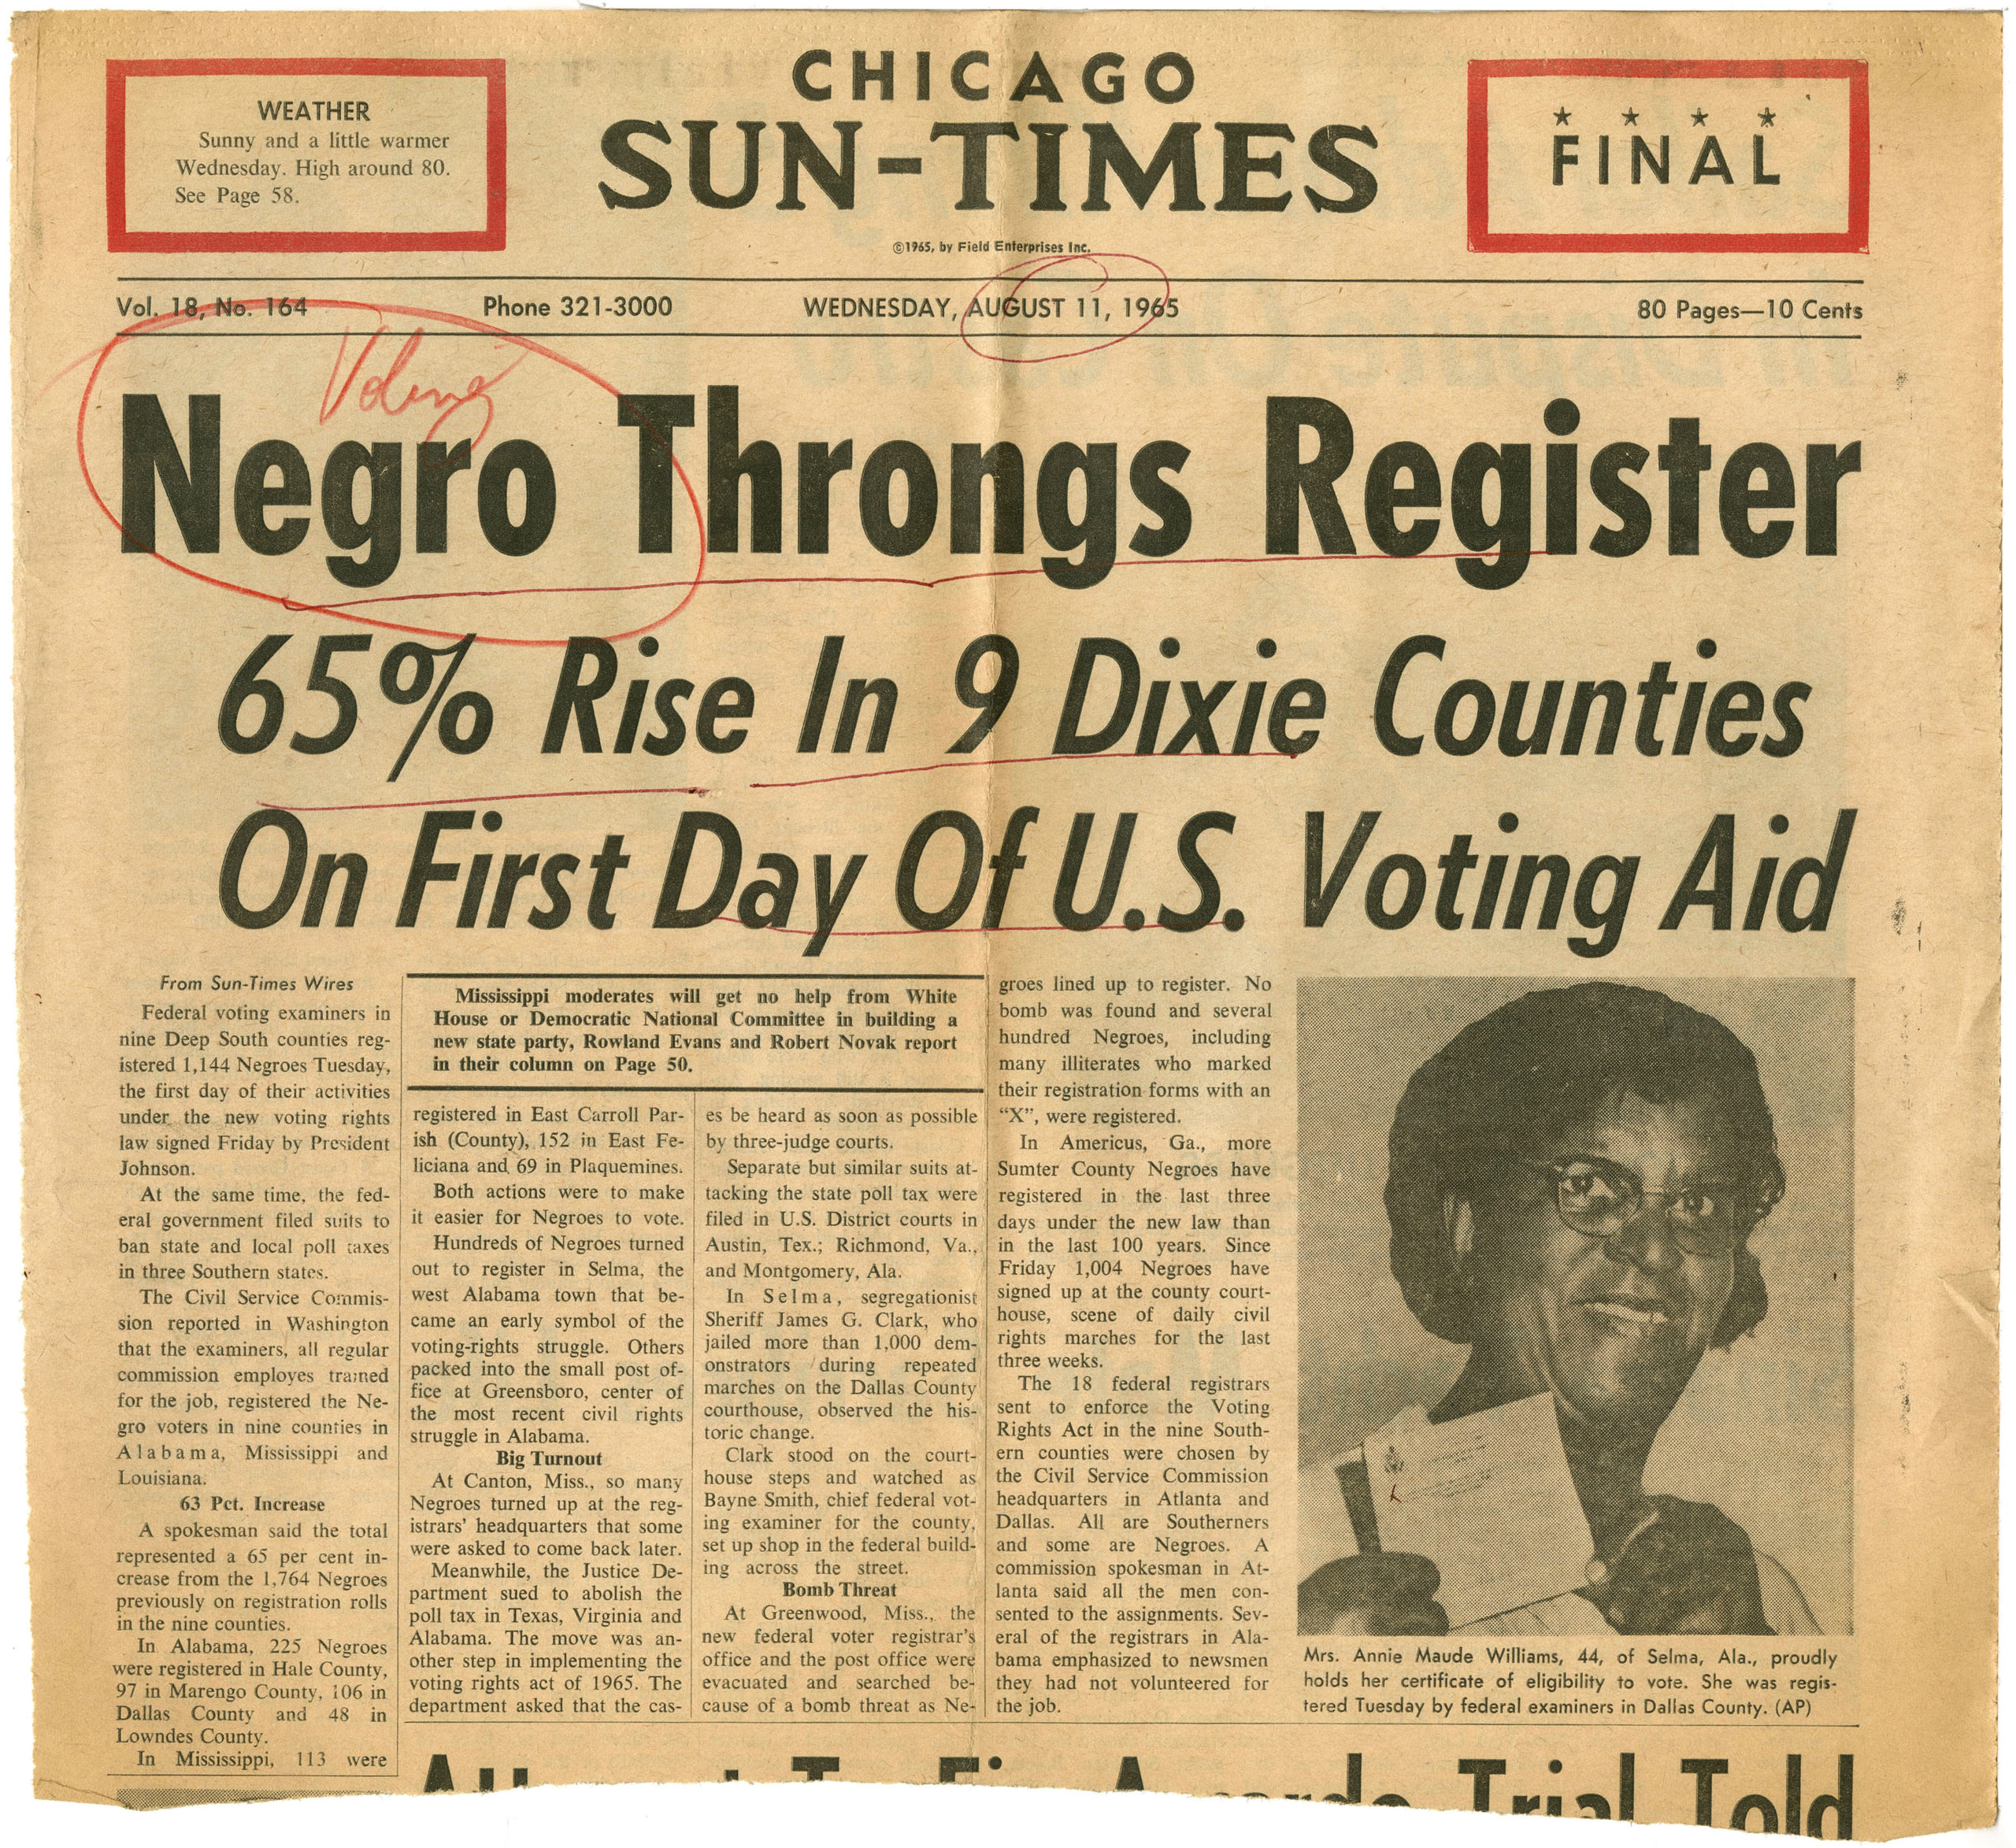 Negro Throngs Register, Chicago Sun-Times1965 August 11Johnson Publishing Company Clippings File Collection